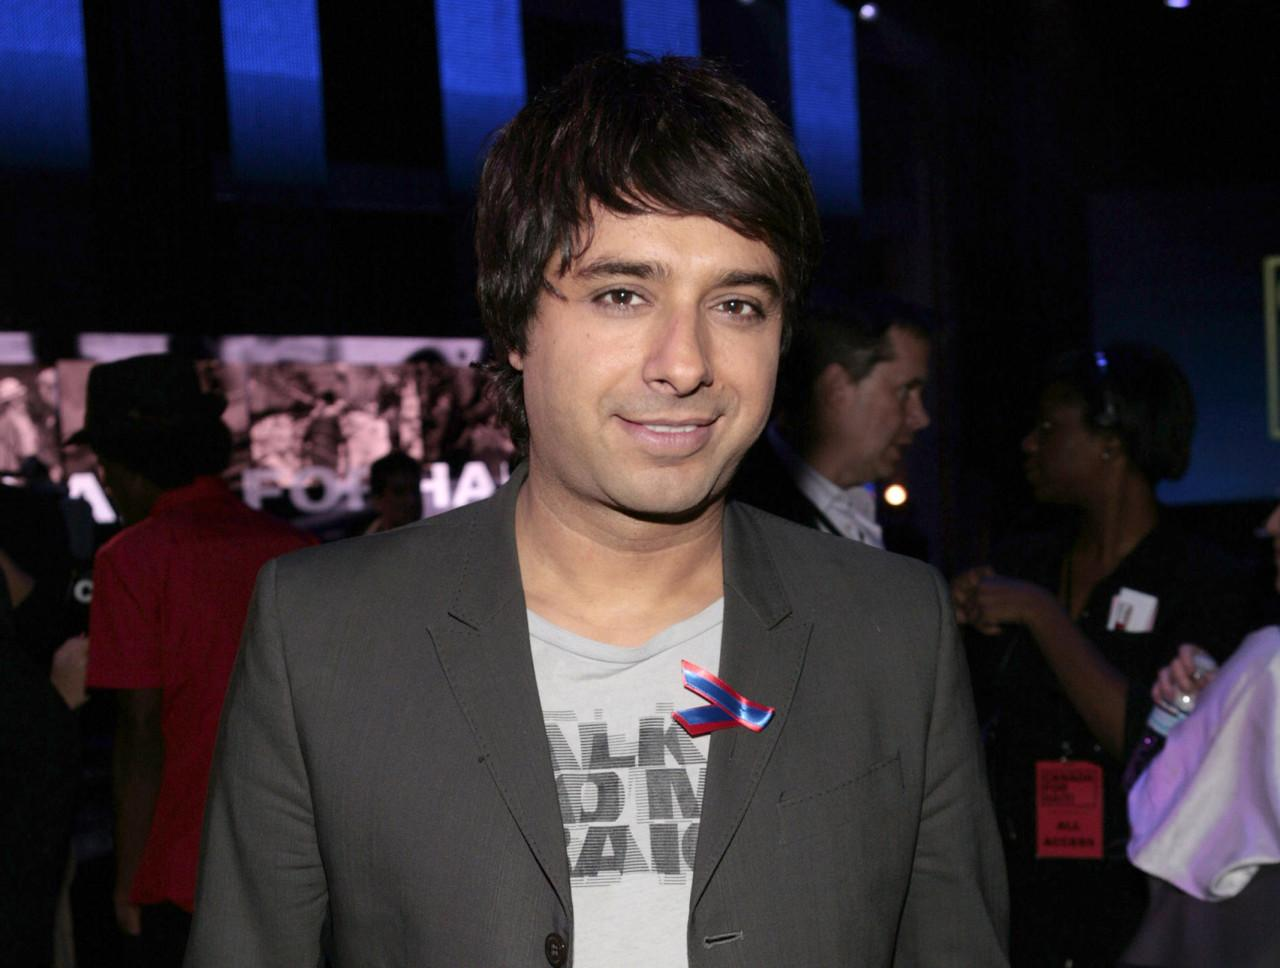 cbc fires jian ghomeshi over sex allegations in Moreno Valley